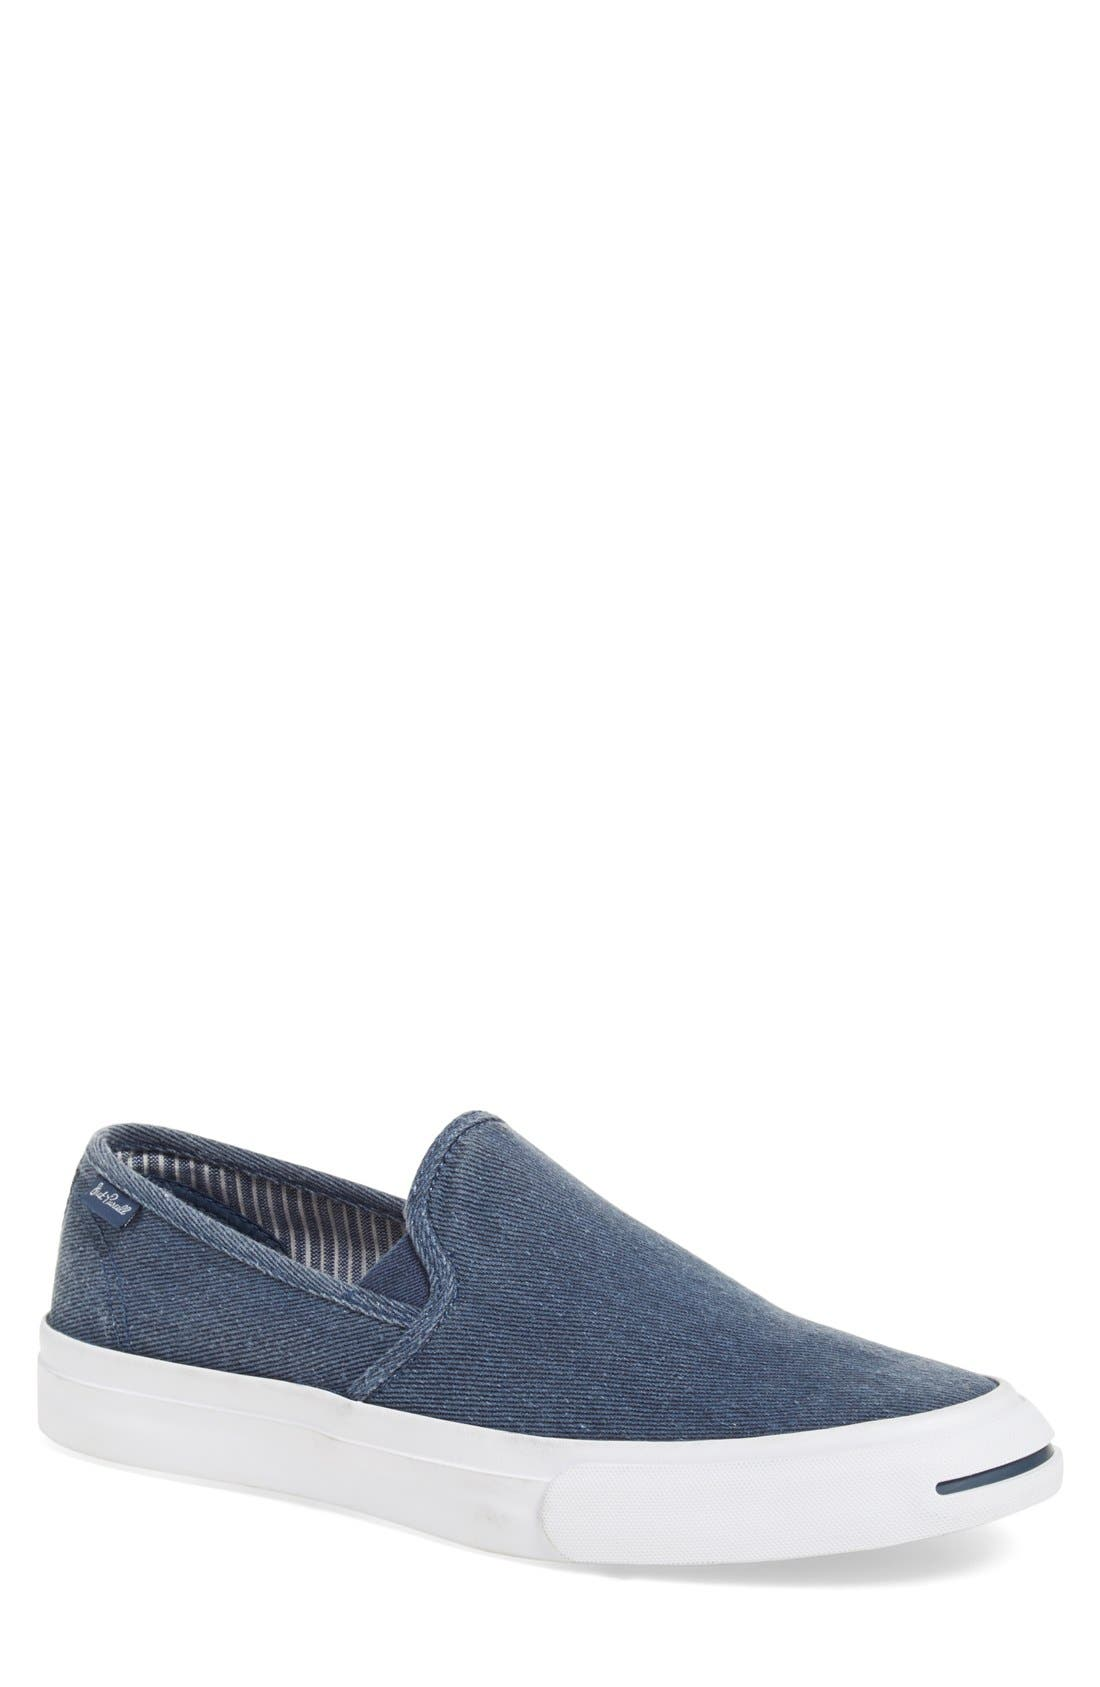 Converse Jack Purcell II Slip-On (Men)